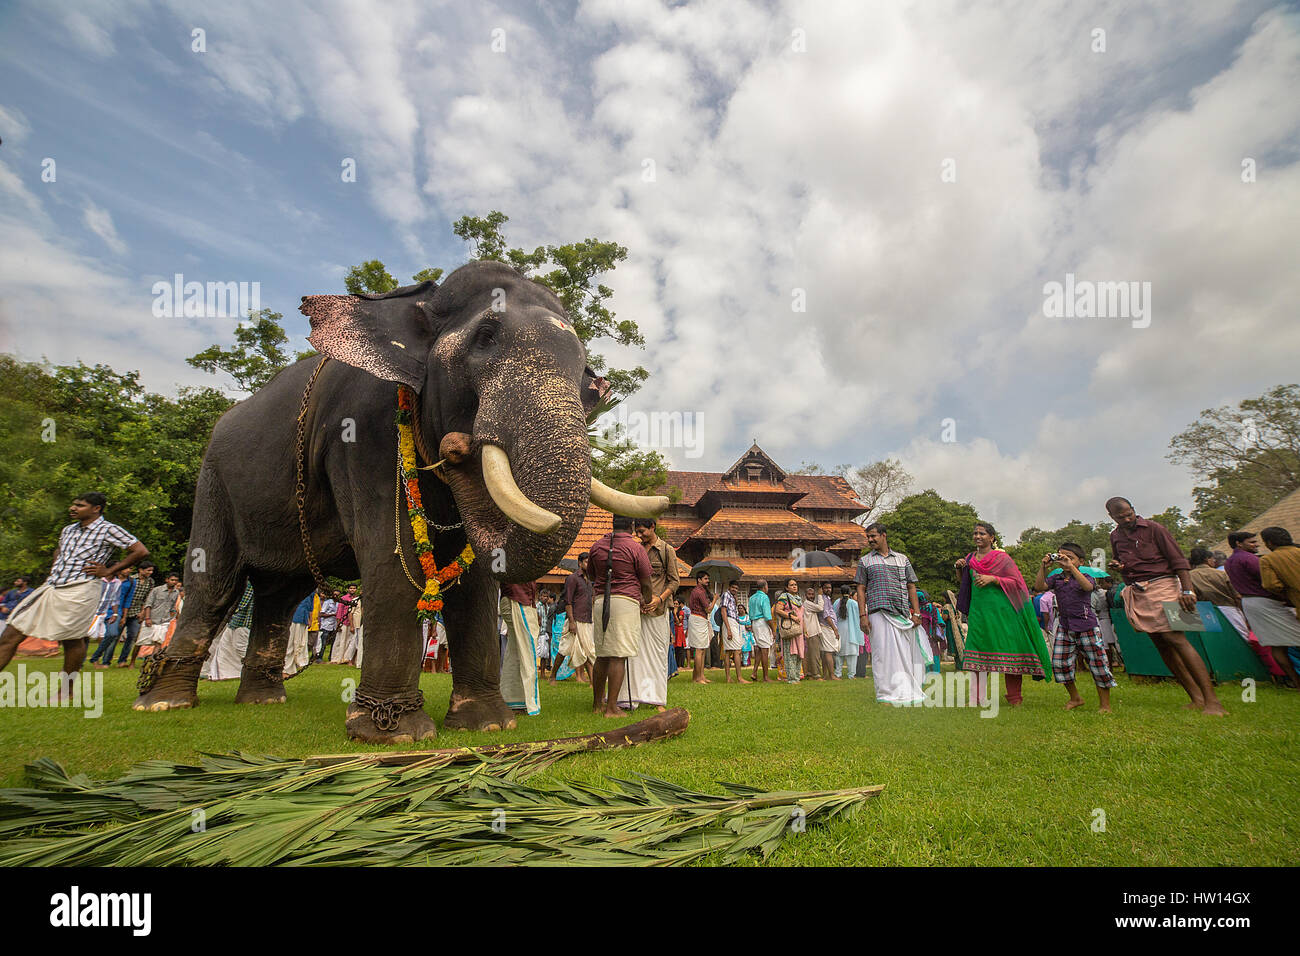 Elephant  eye and thrissur festival - Stock Image